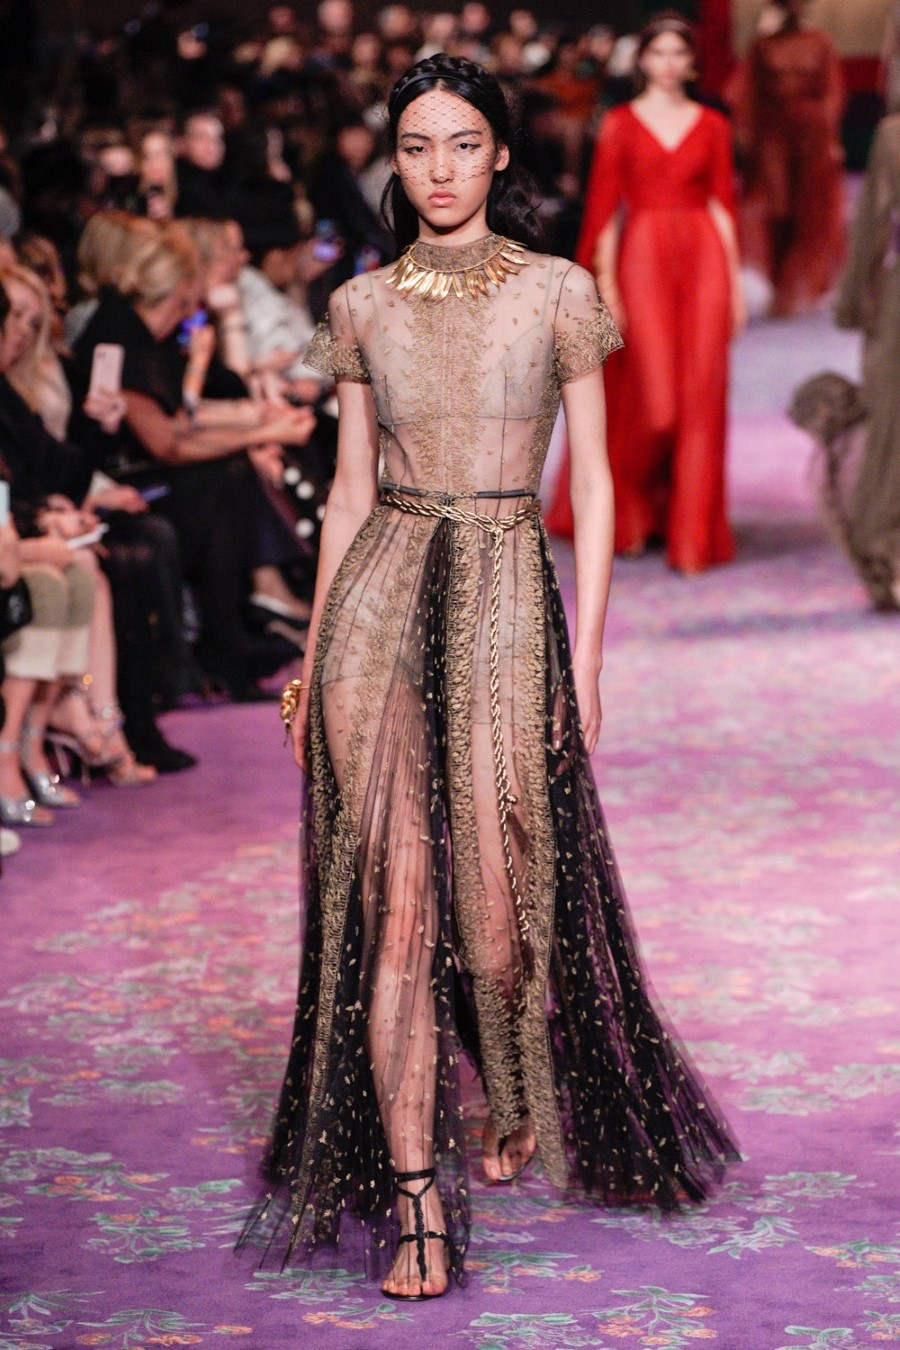 Christian Dior Haute Couture Spring Summer 2020